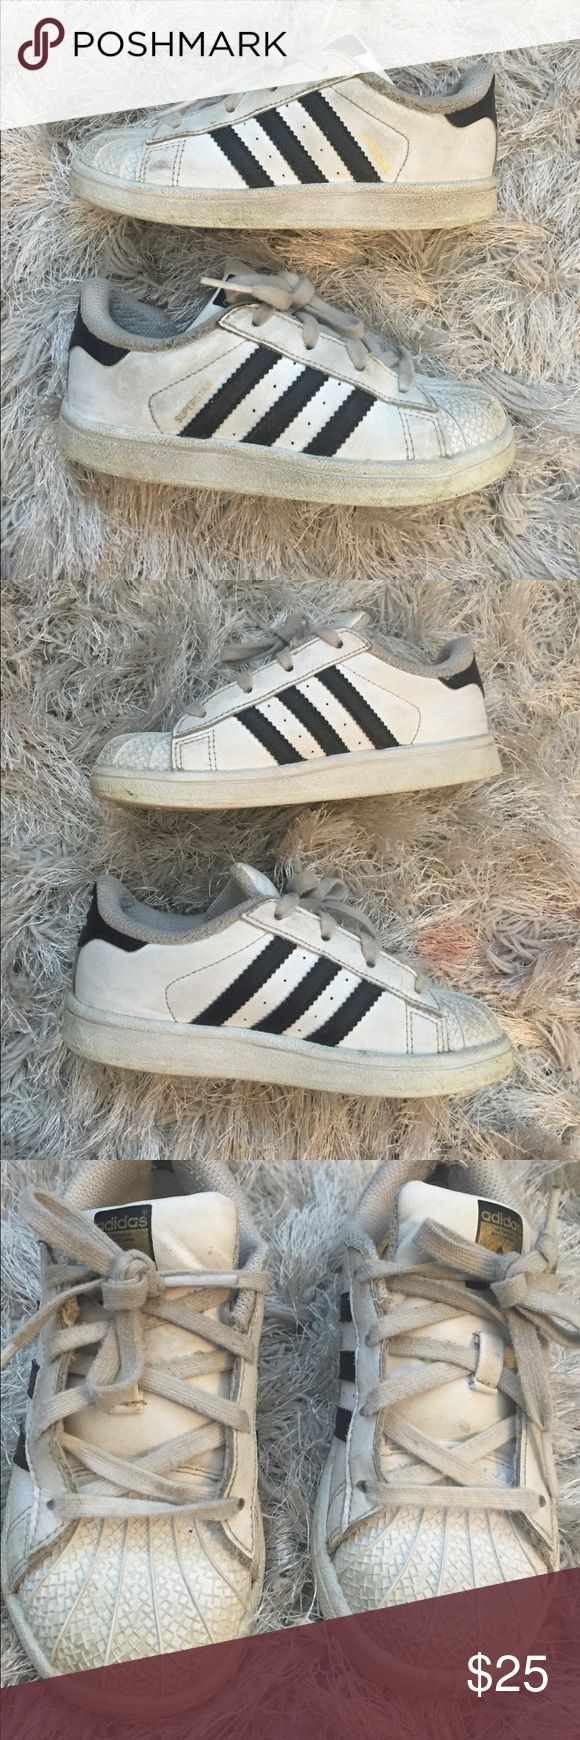 Adidas Superstars Toddler Girls Adidas Superstar Toddler Girls                                              Size 10                                                                                    Shoes show signs of wear. Please see all pics. Have not tried to clean. Dirt may come off with a good cleaning or wash.  Scuff marks and some fraying on top of shoes. adidas Shoes Sneakers